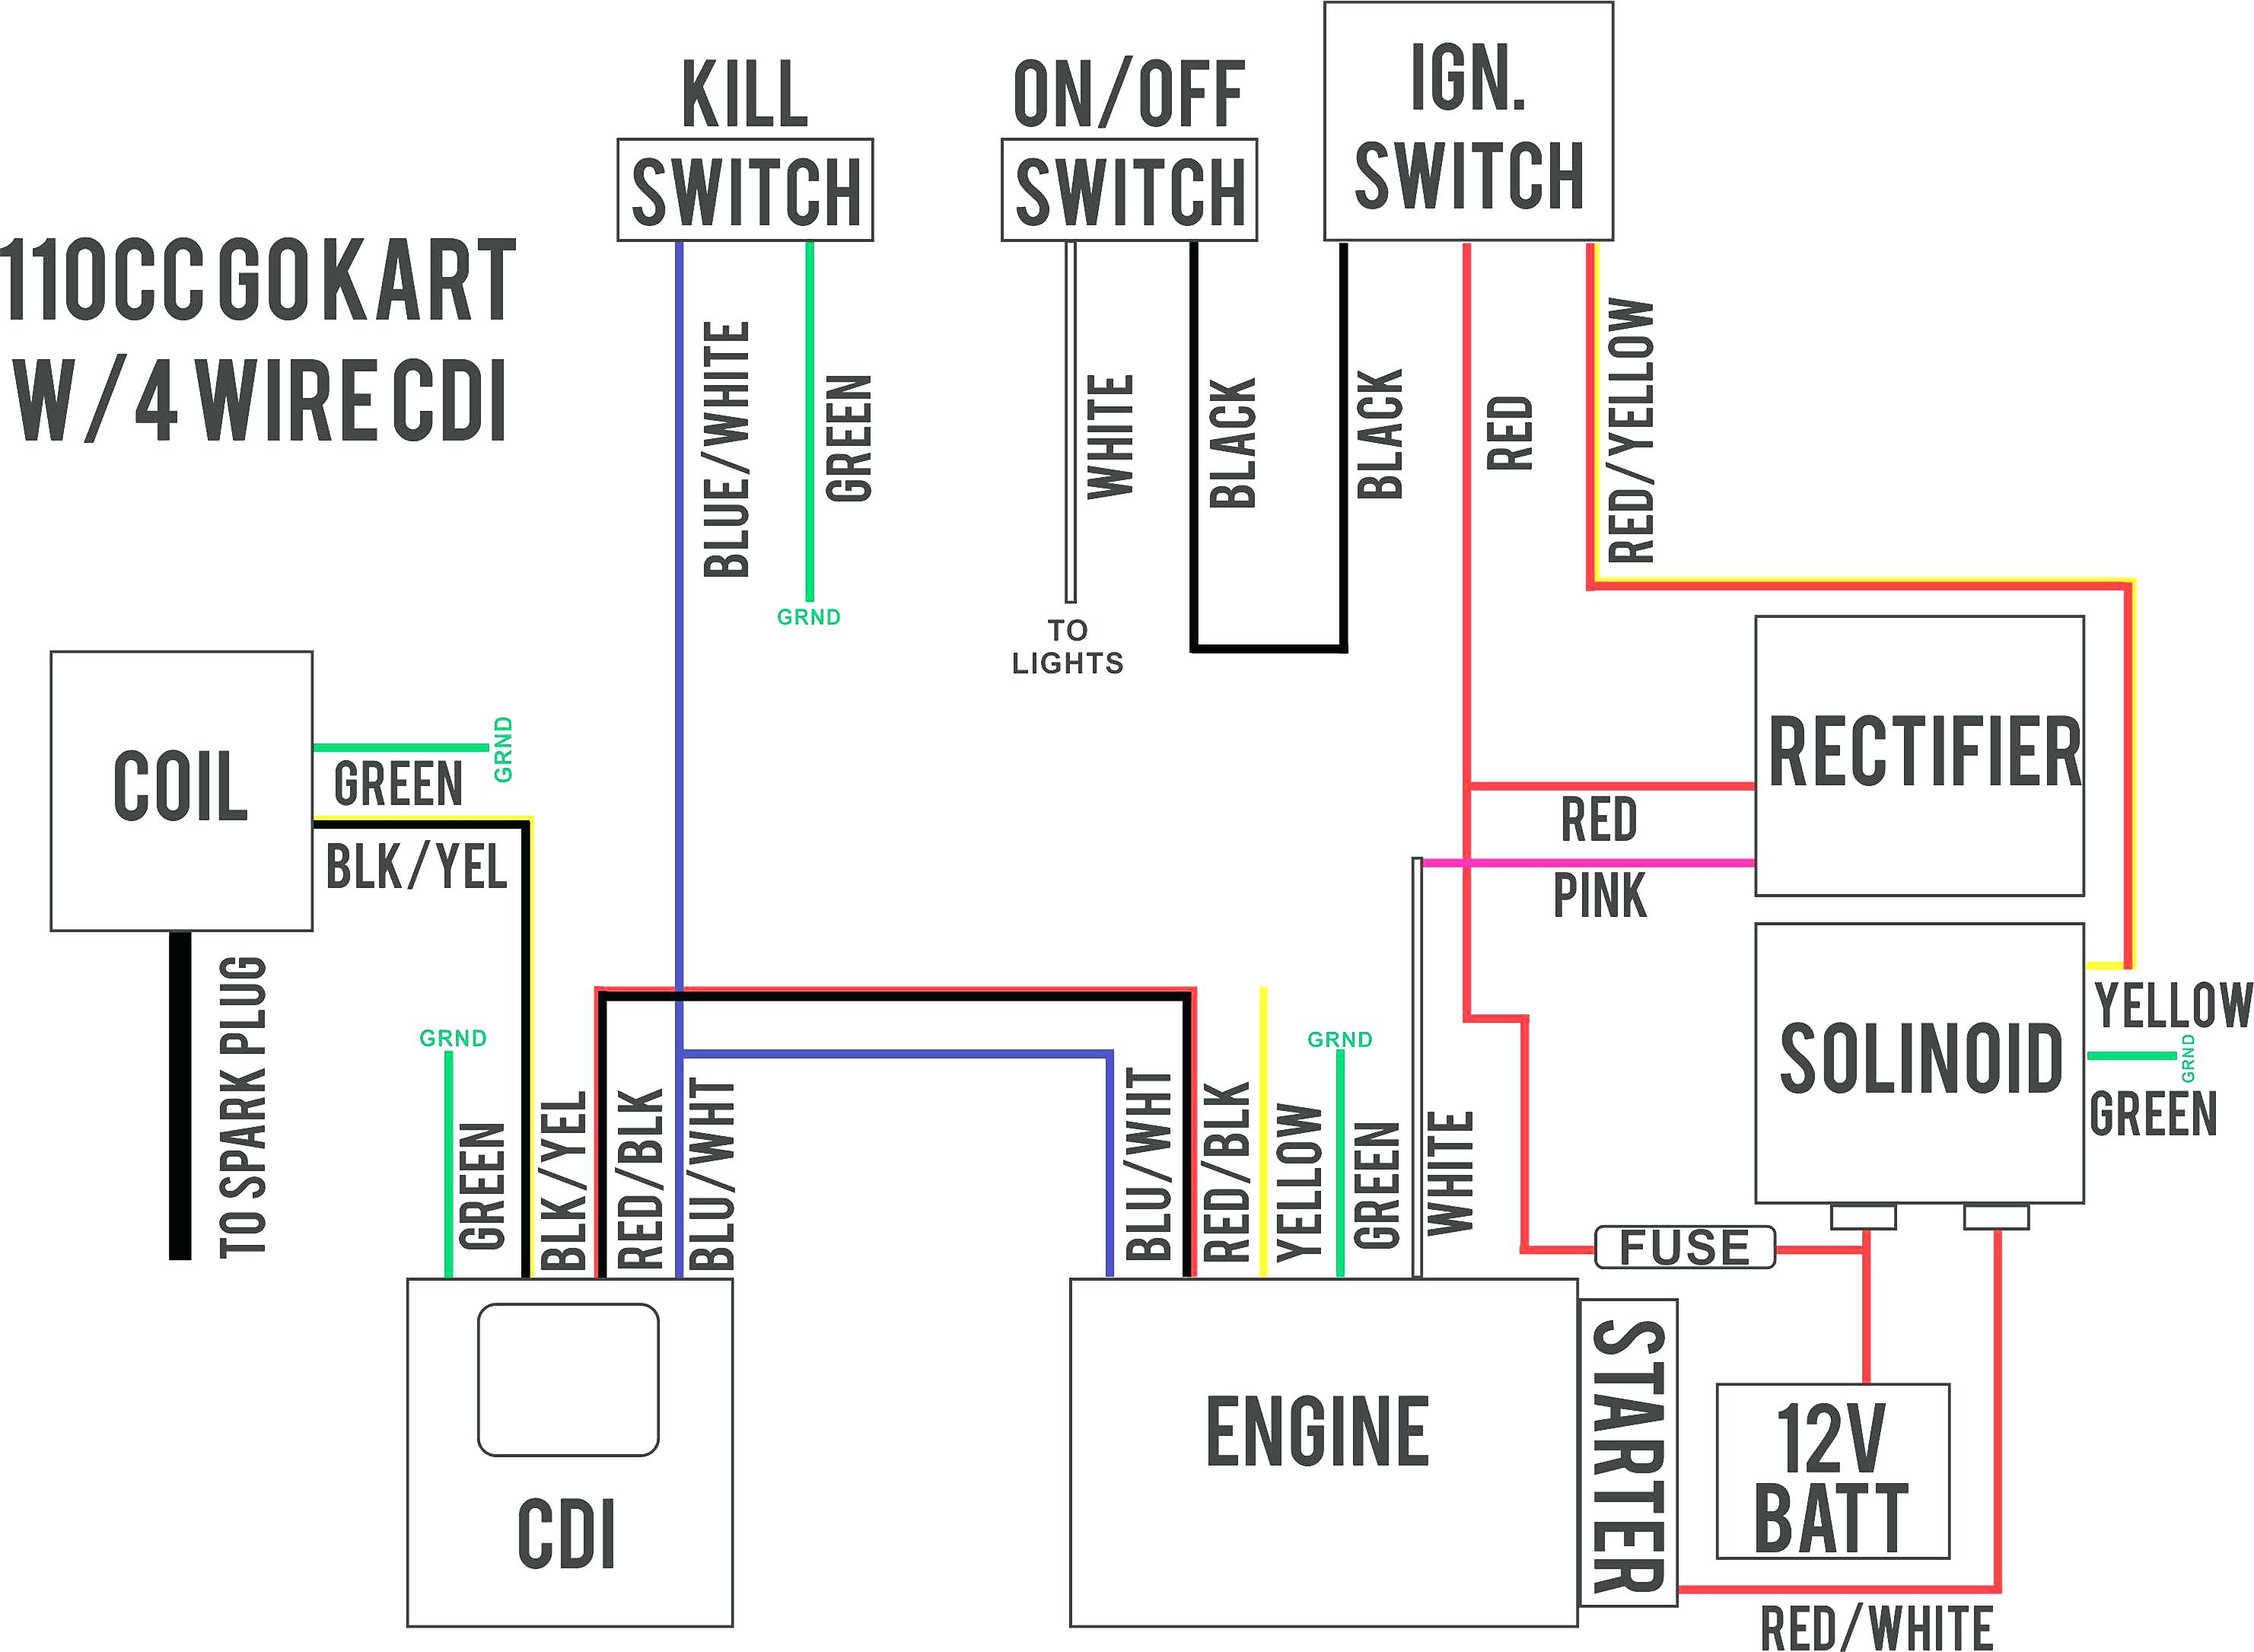 150Cc Scooter Wiring Diagram - Wiring Diagrams Hubs - 150Cc Scooter Wiring Diagram